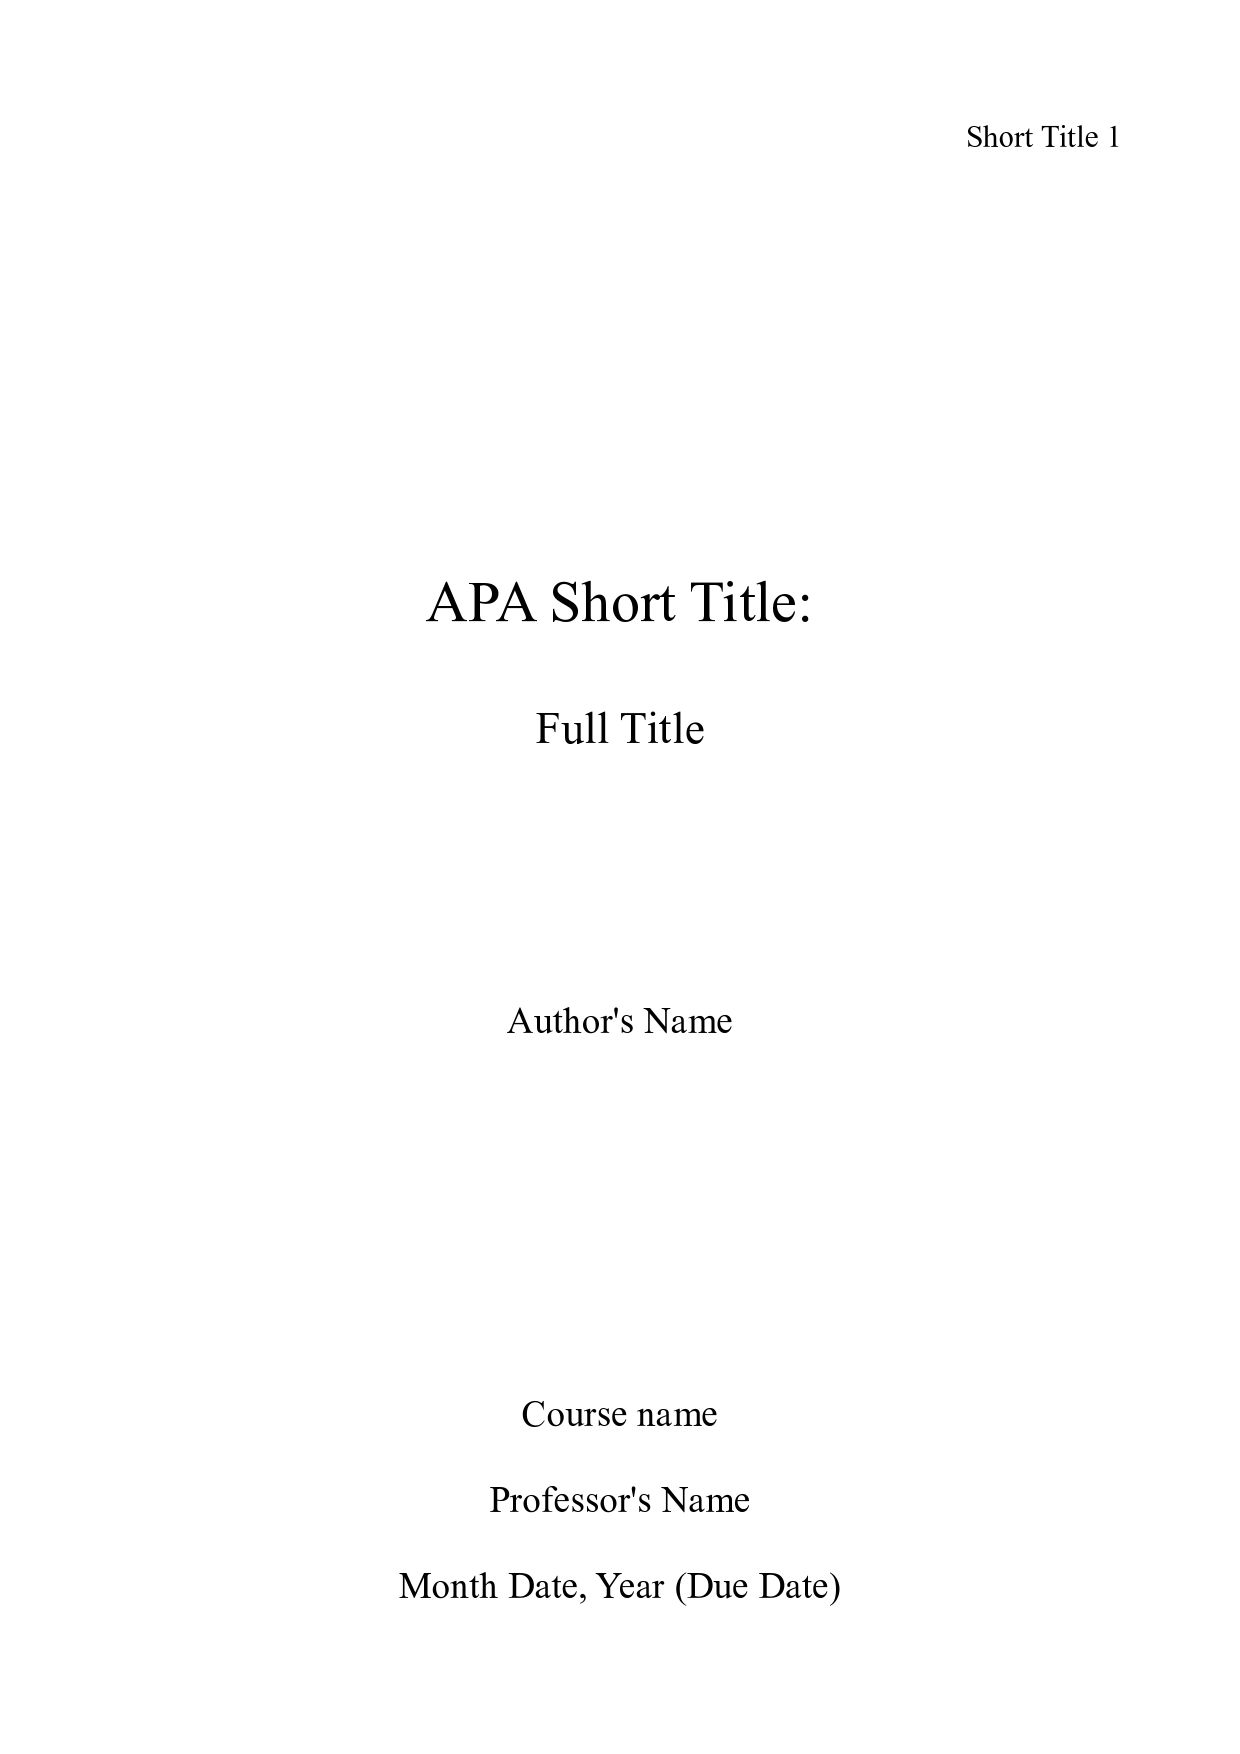 002 Research Paper Cover Page Template For Apa Rare Format Sample Title Full